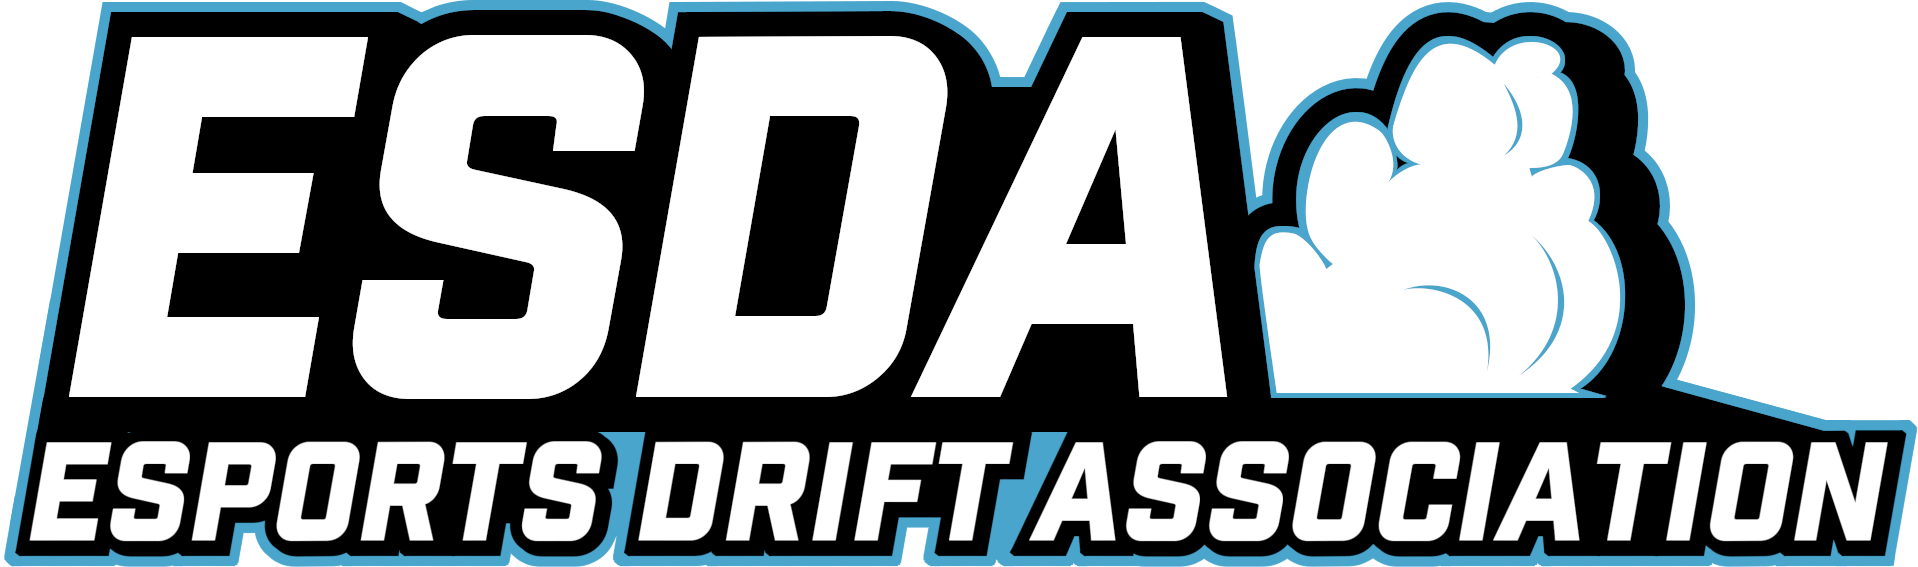 ESports Drifting Association